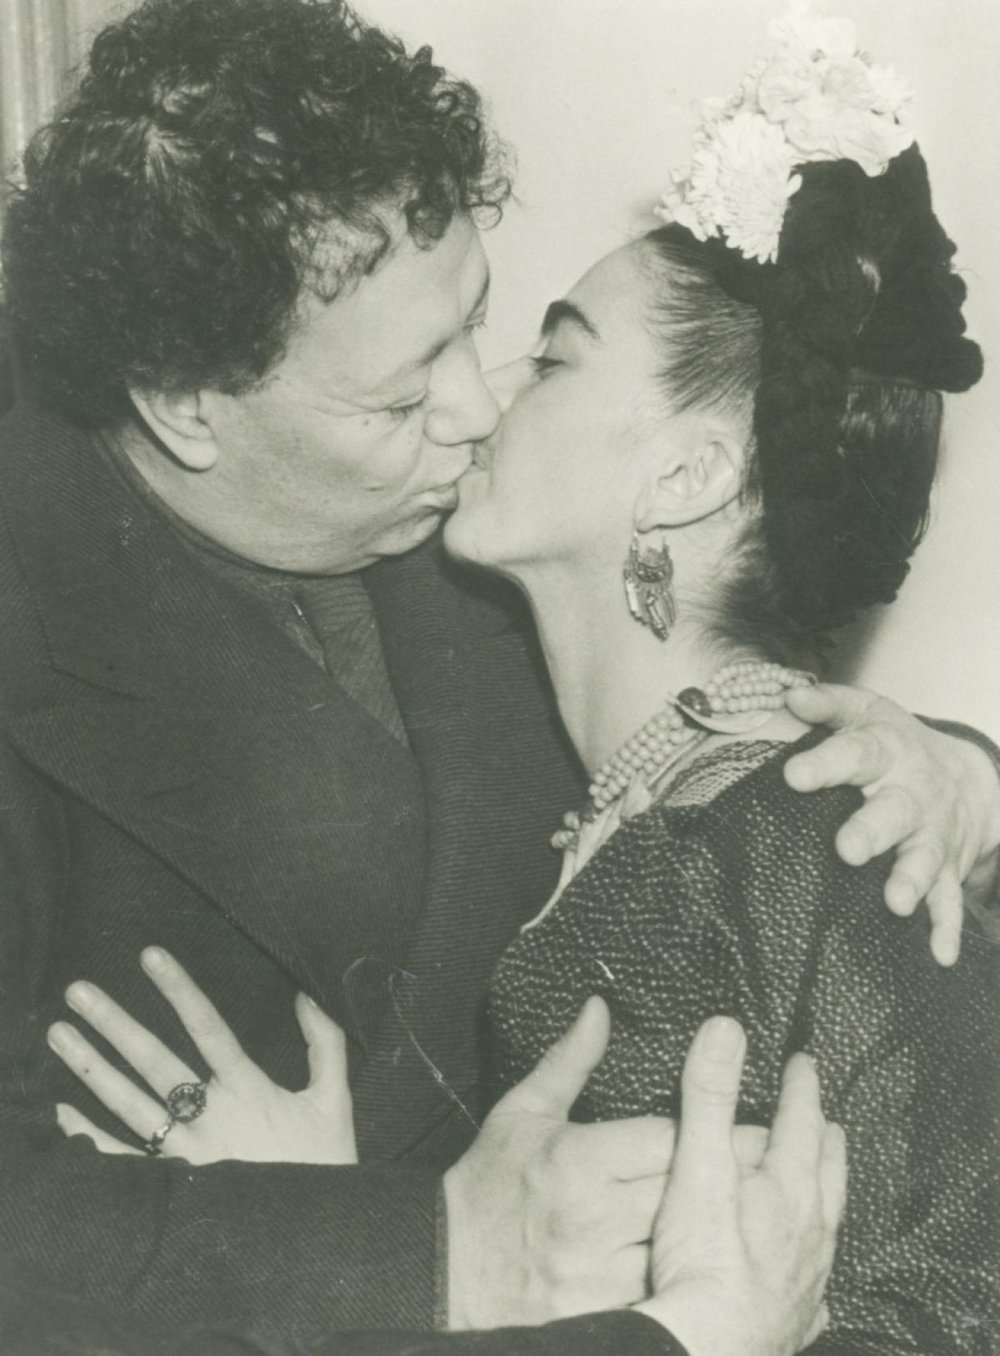 Unknown photographer, Frida and Diego kissing following their second wedding after signing their marriage certificate, San Francisco, 1940